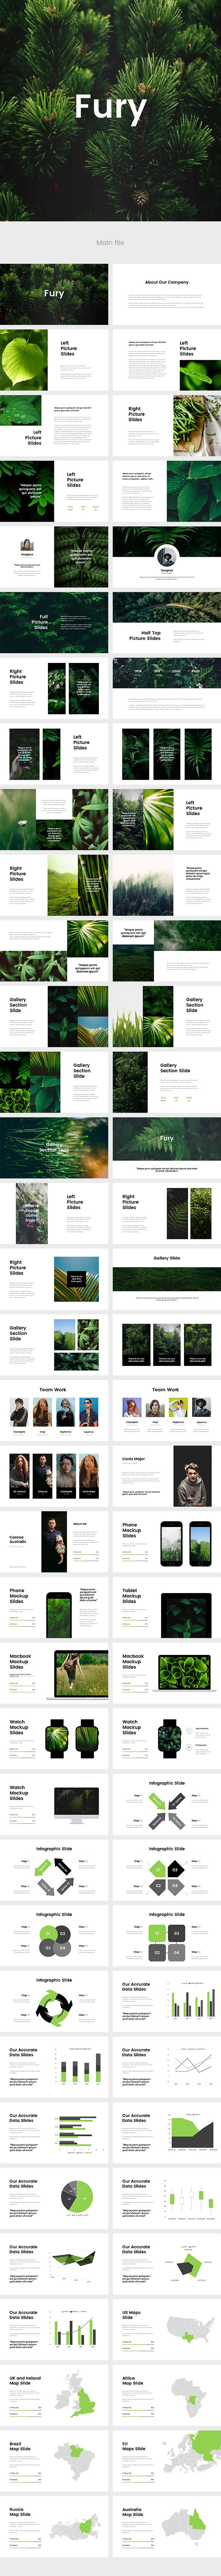 Fury Powerpoint Template